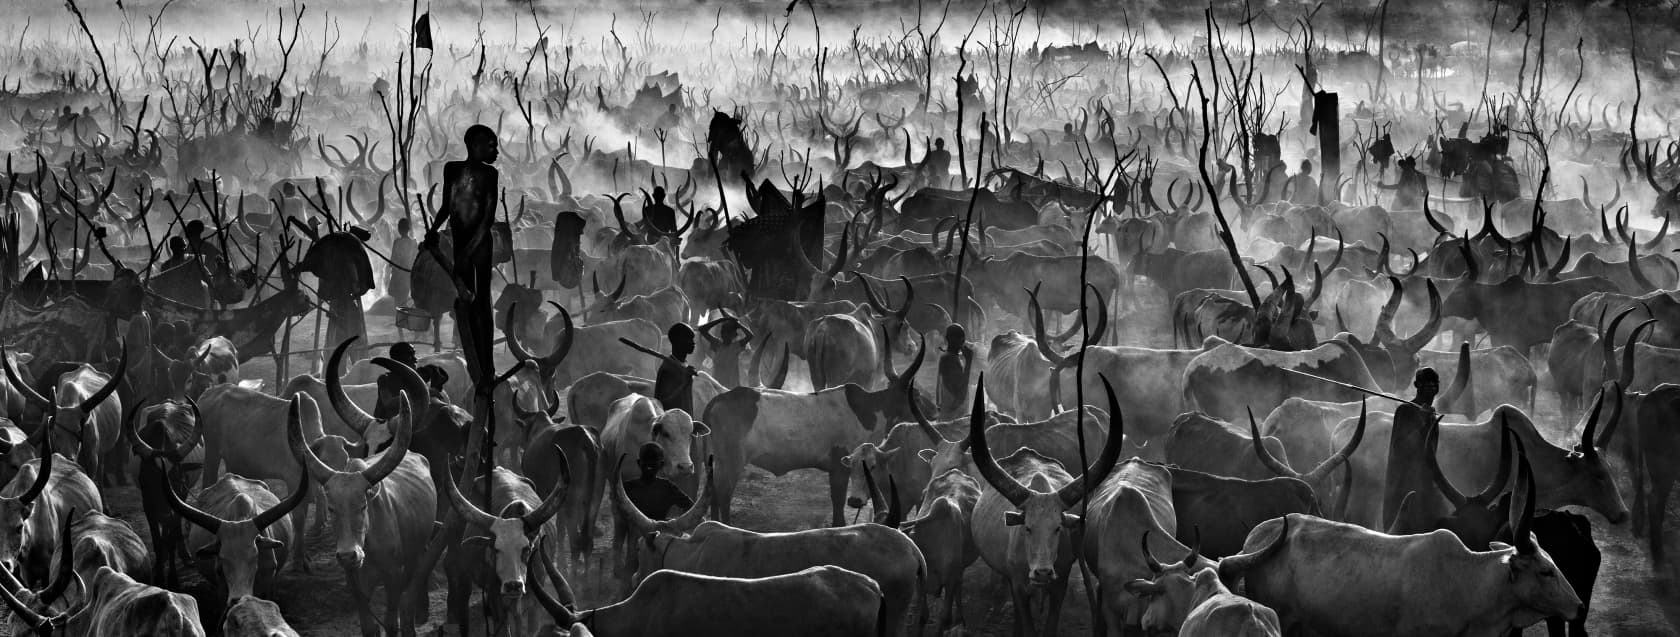 David Yarrow, Mankind II (B&W), 2015